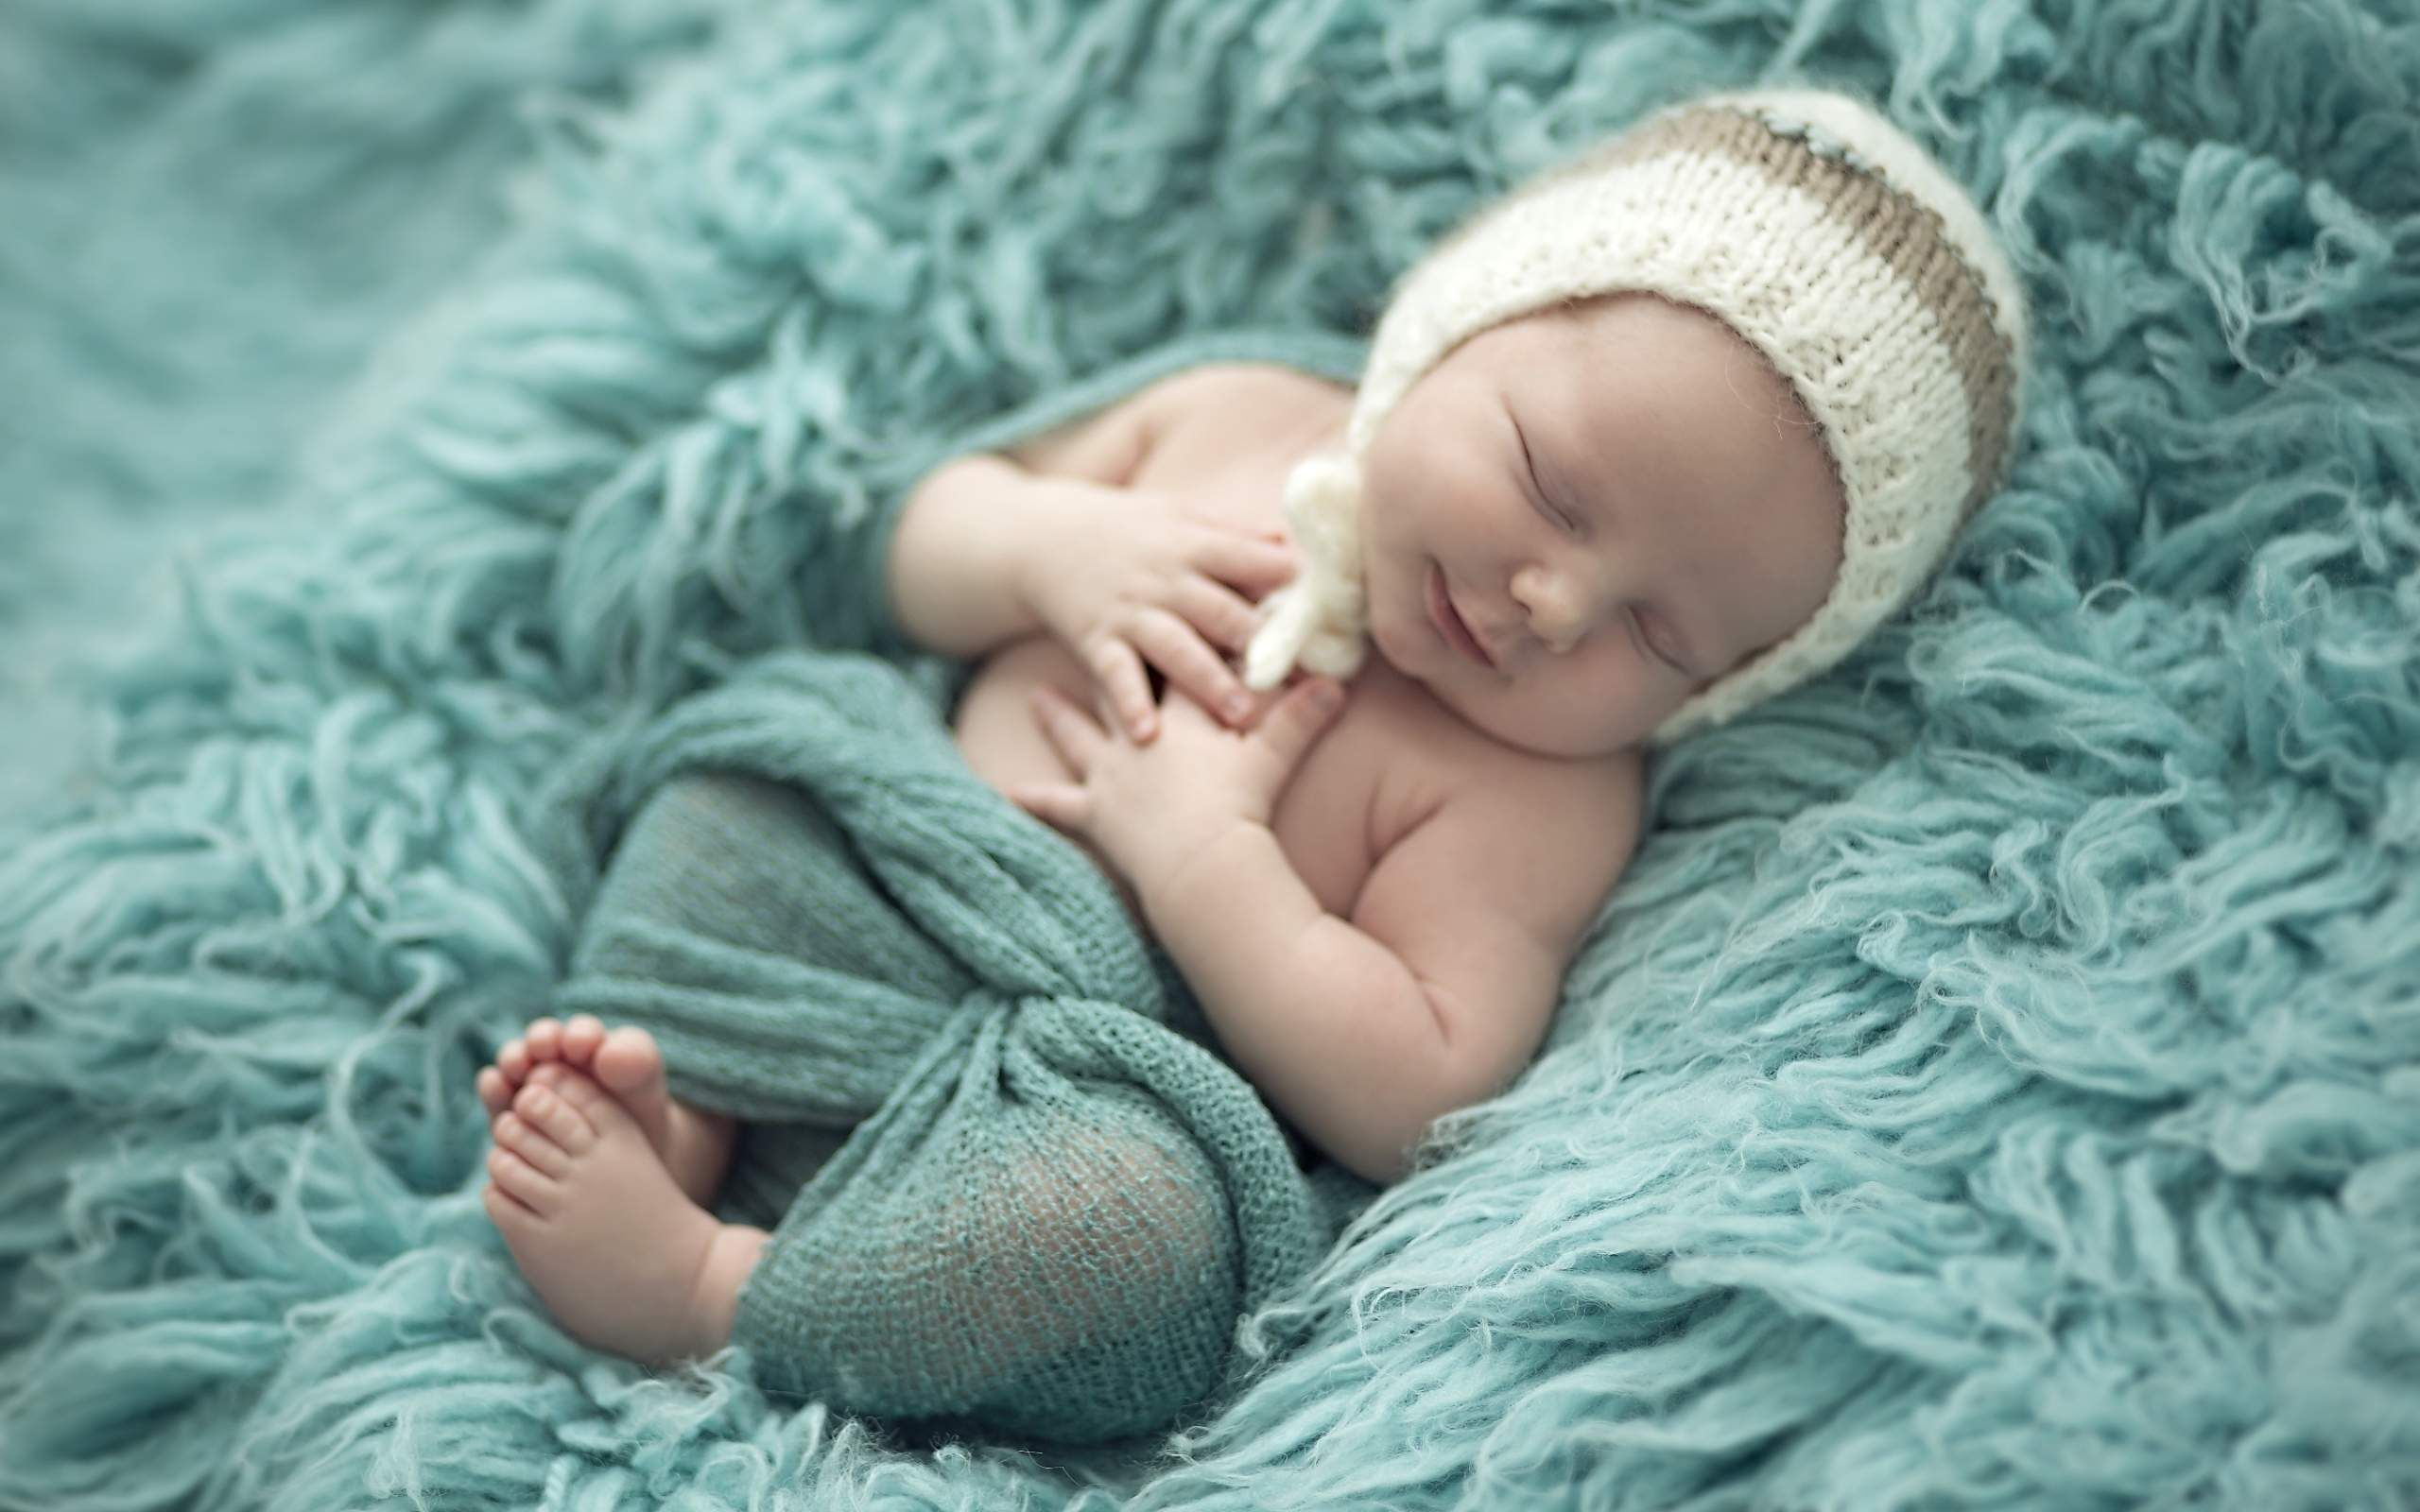 Sleepy Baby Boy Wallpaper For Desktop And Mobile In High Resolution Free Download We Have Best Collection Of New Born Cute Sleeping Baby Wallpaper Hd